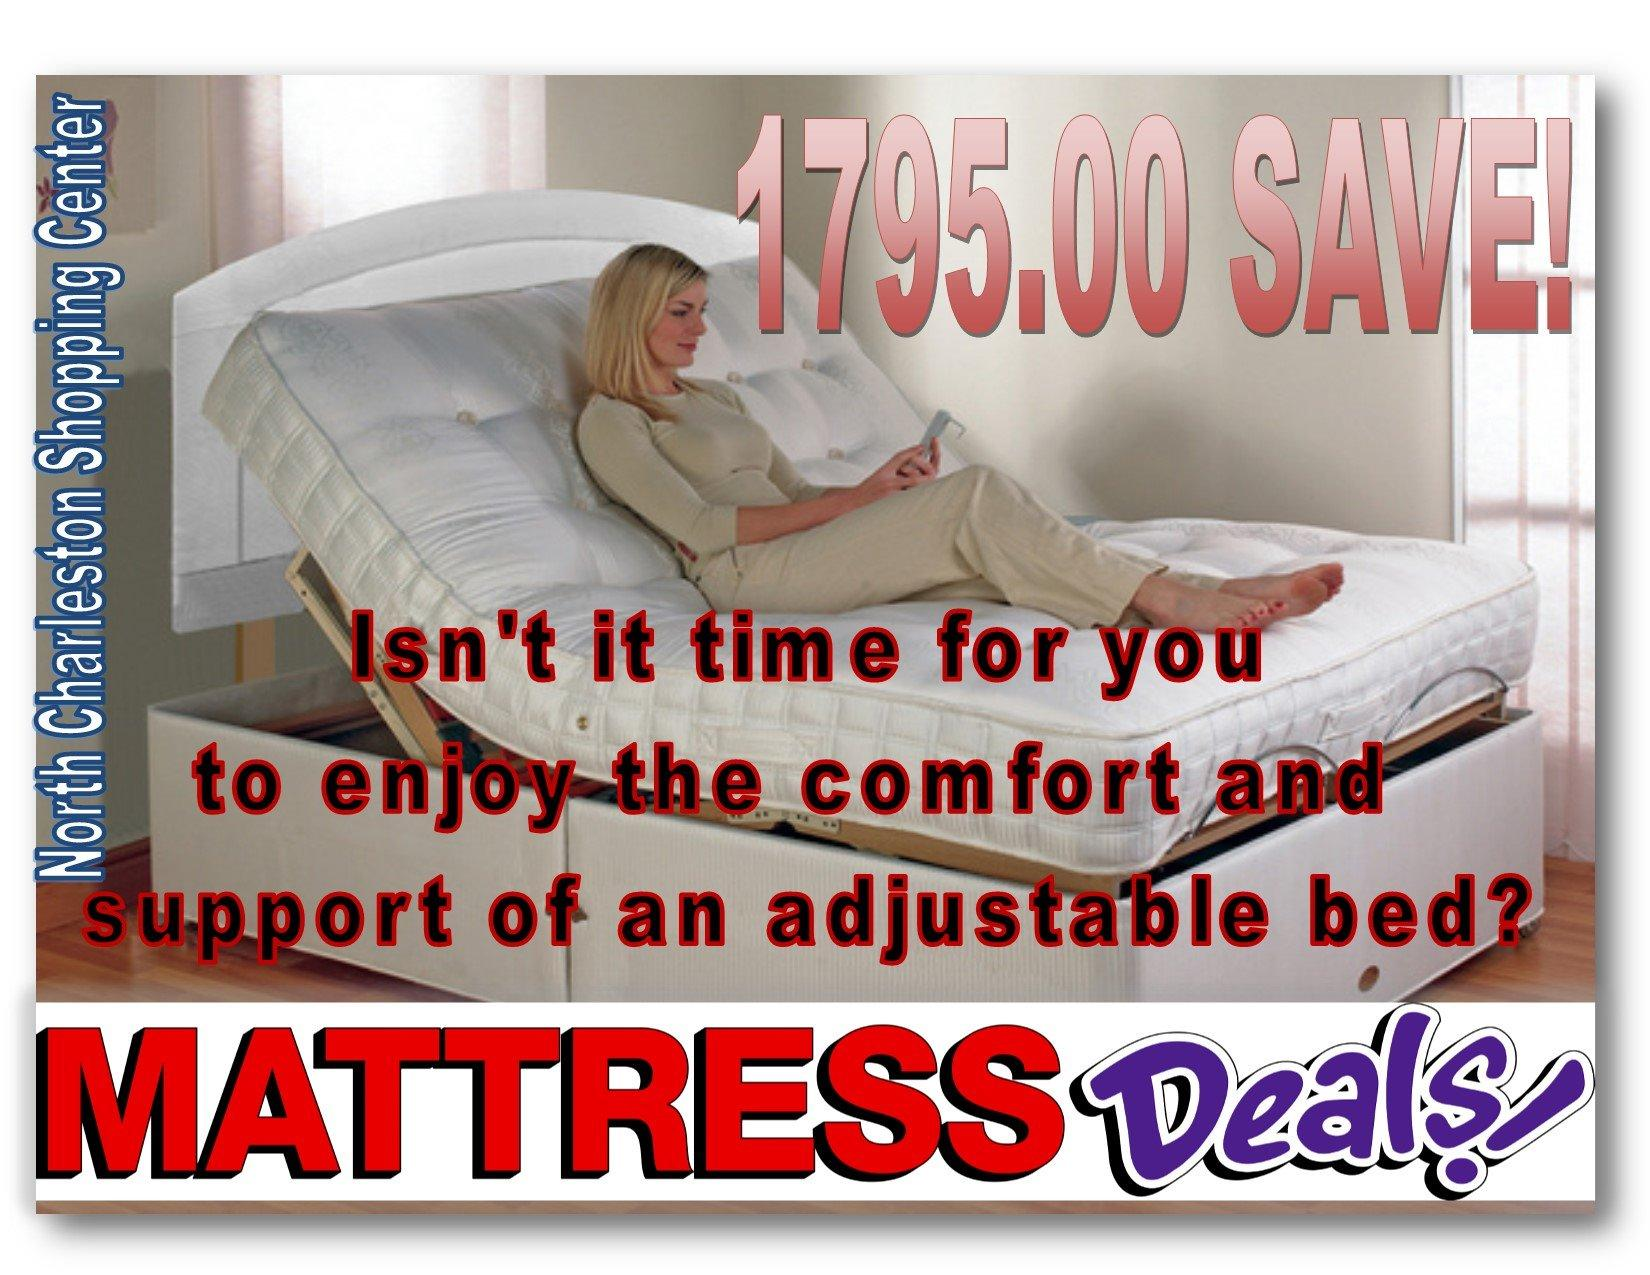 Mattress Deals image 20